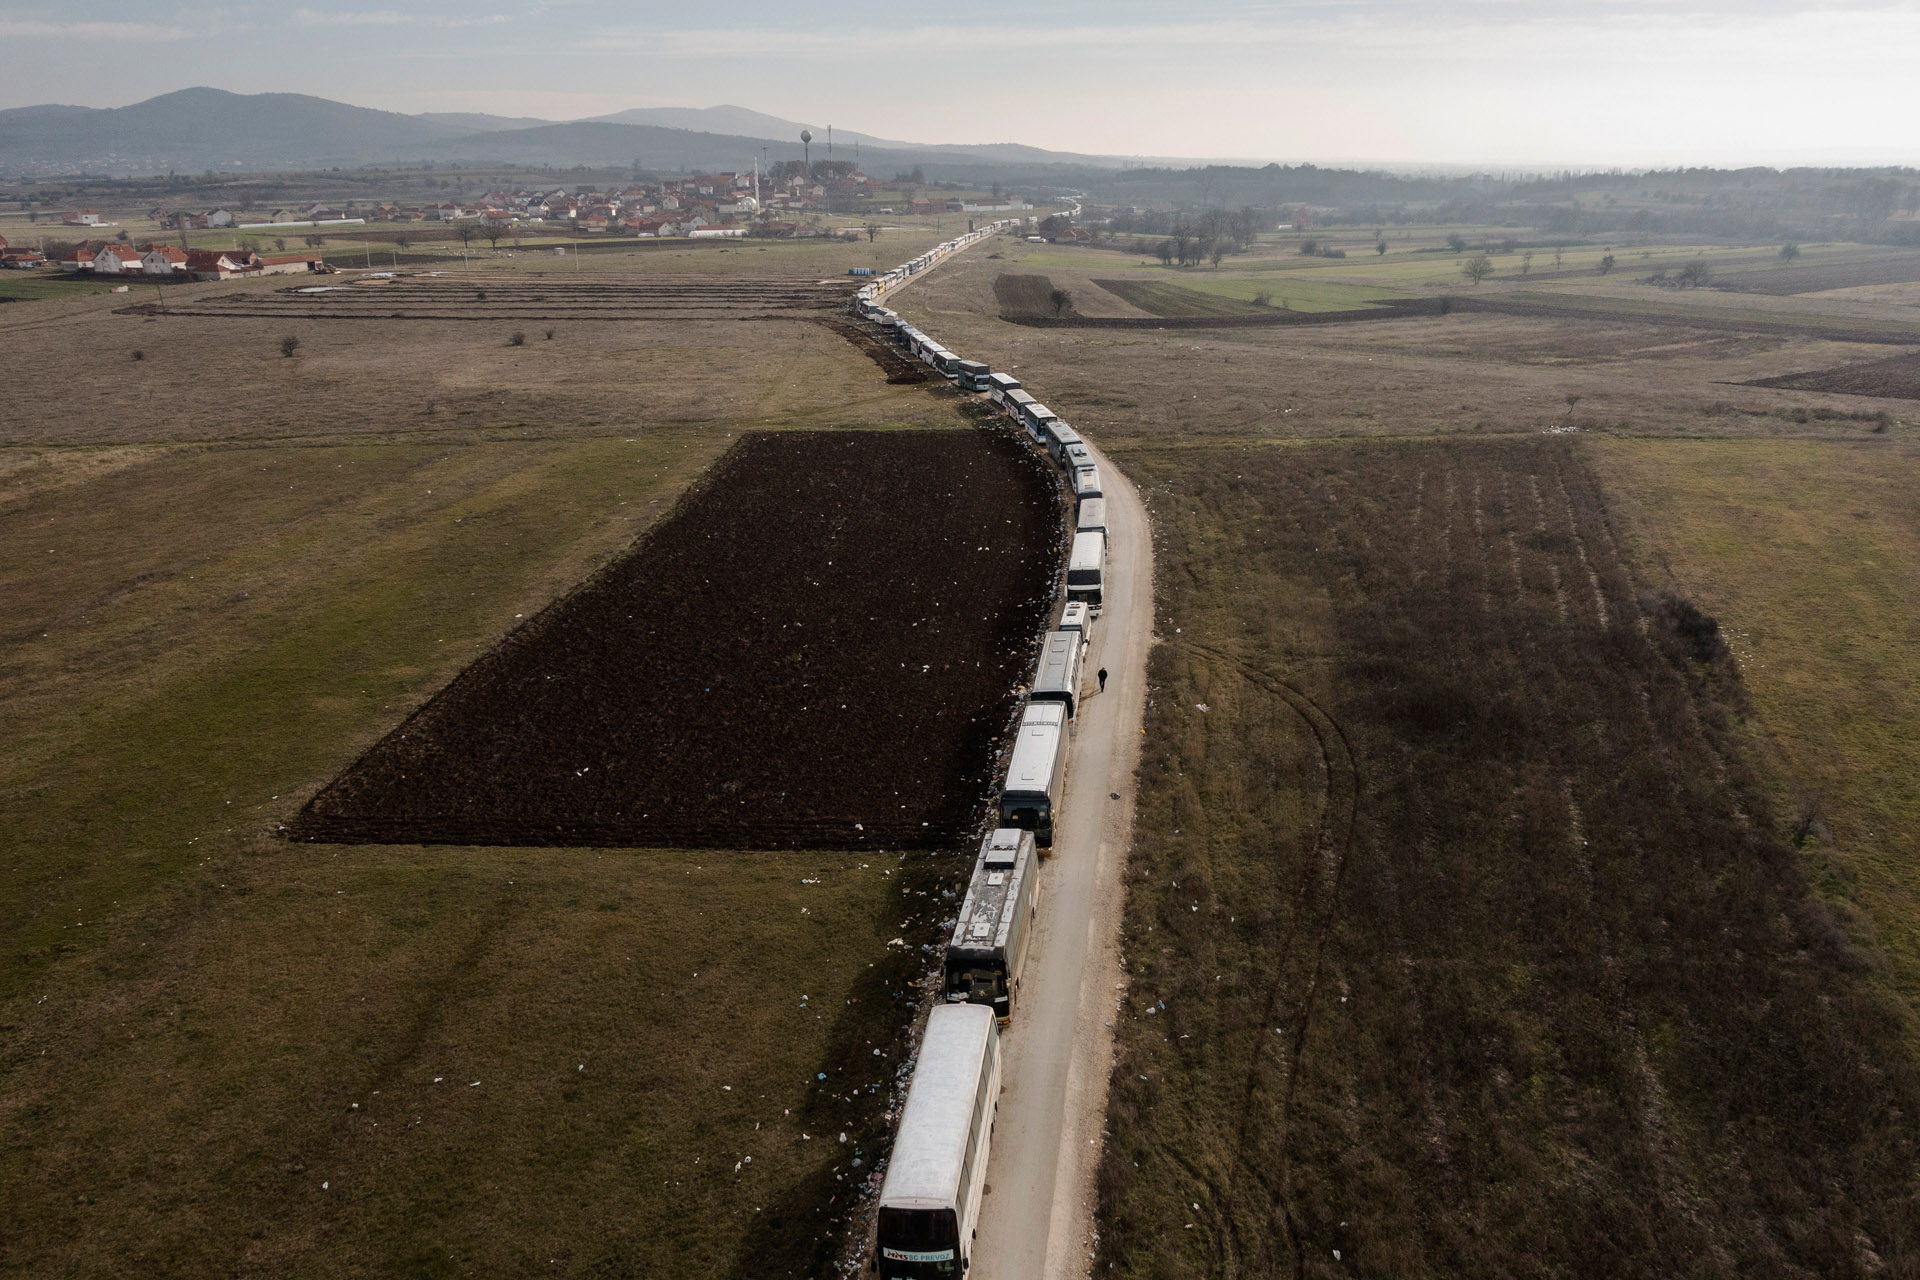 A 4 kilometer bus convoy for refugees.